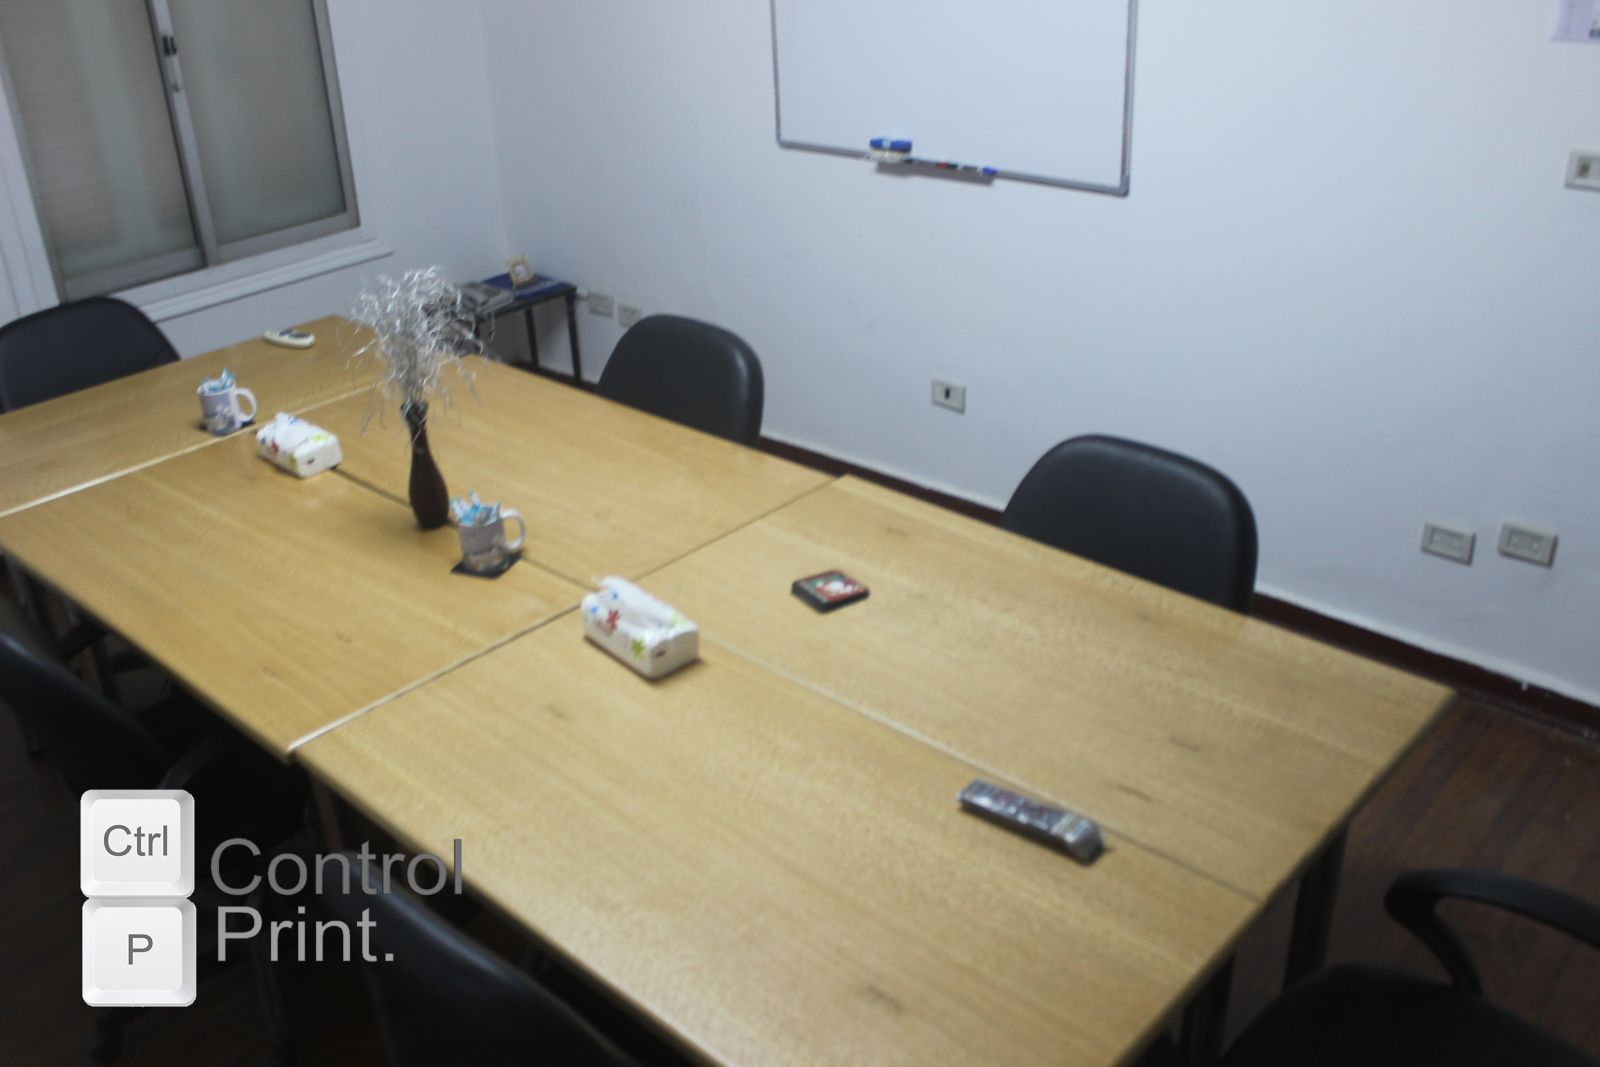 ctrlp+p Co-working Office Space, Cairo